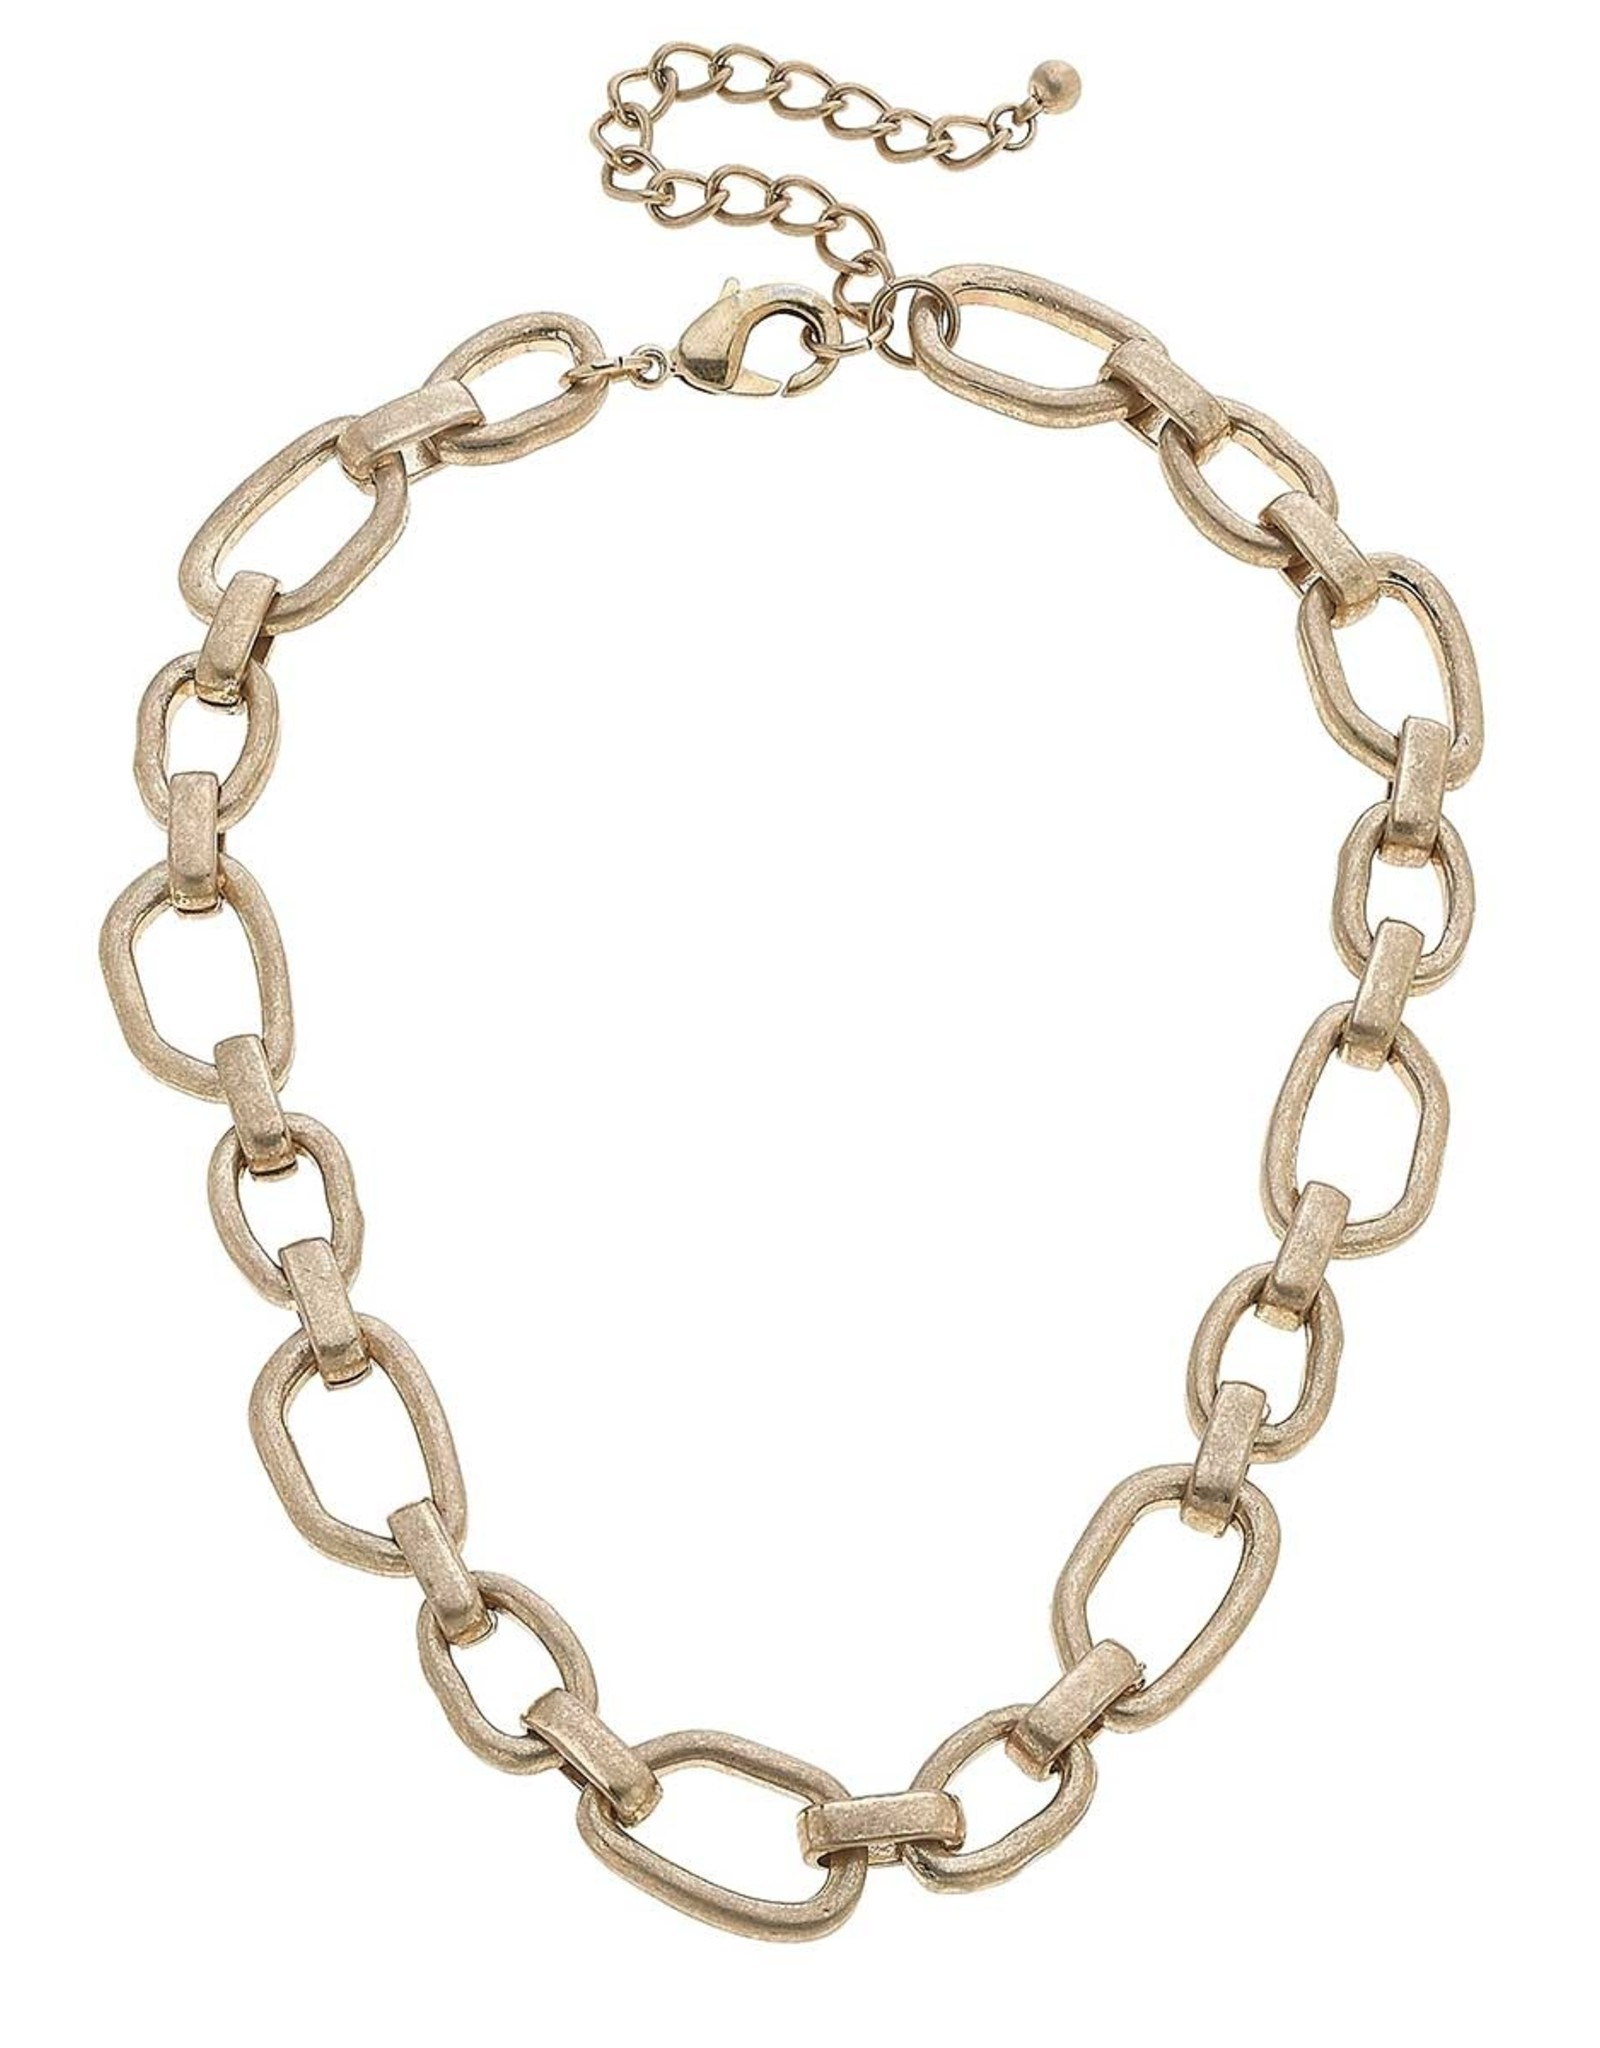 - Worn Gold Chain Link Necklace